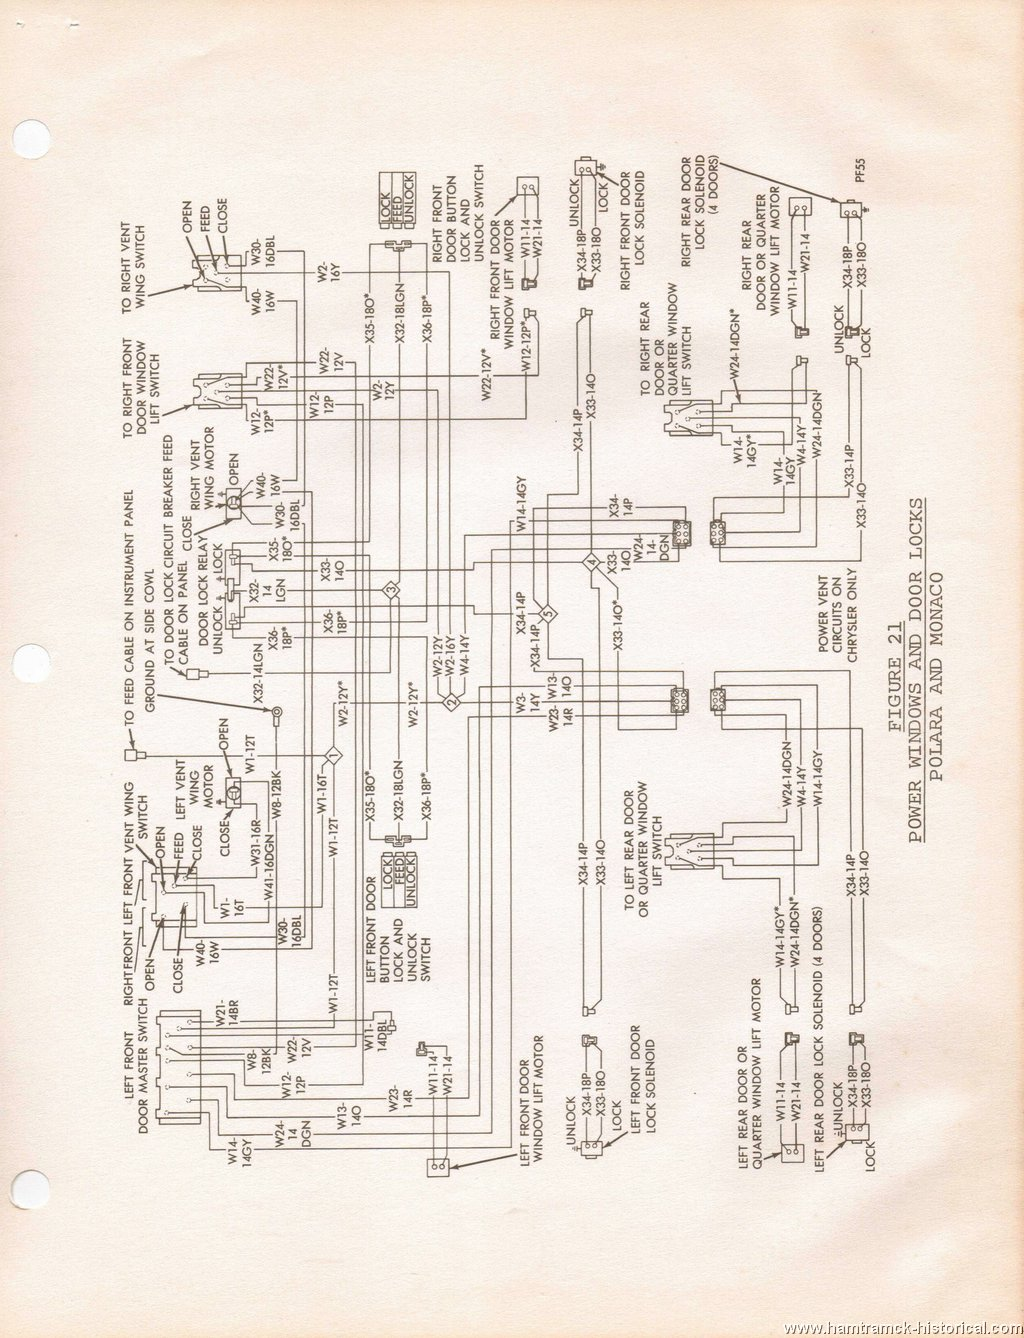 1972 Chevy El Camino Wiring Diagram Schematic Custom Project 72 Caprice Dodge Van Free Engine Image For